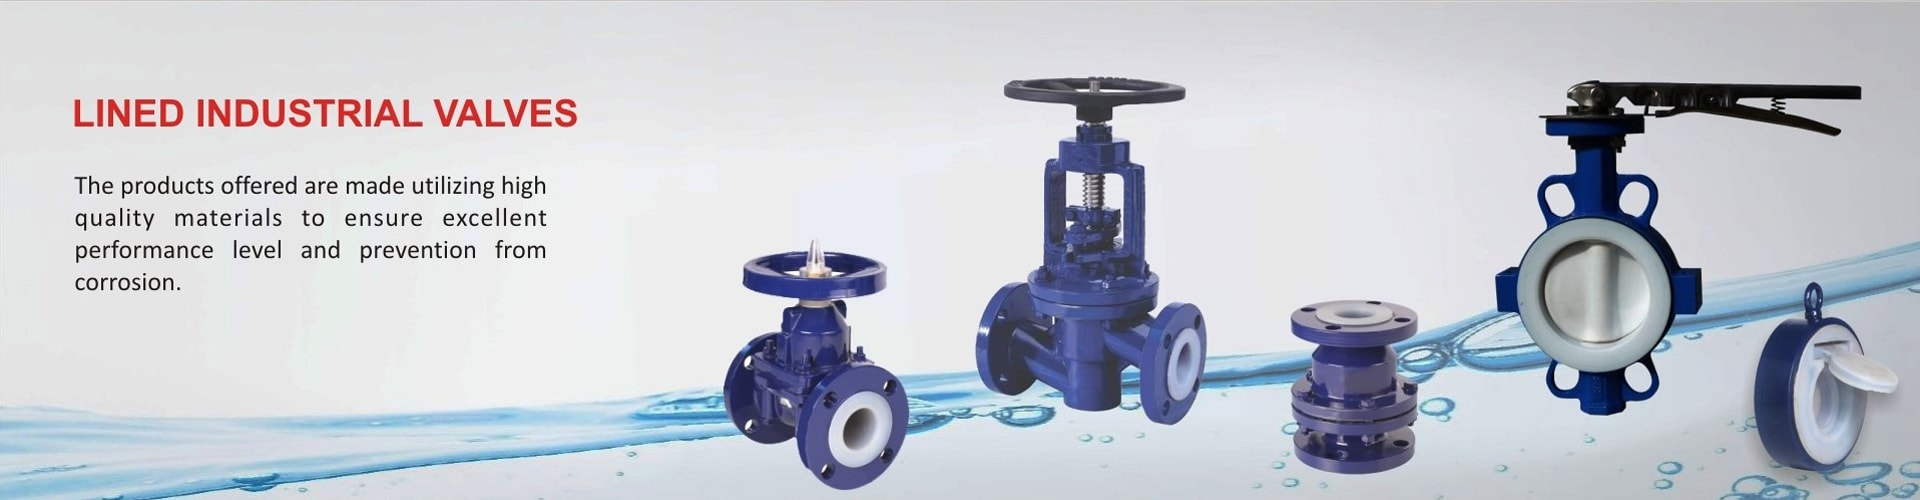 lined industrial valves